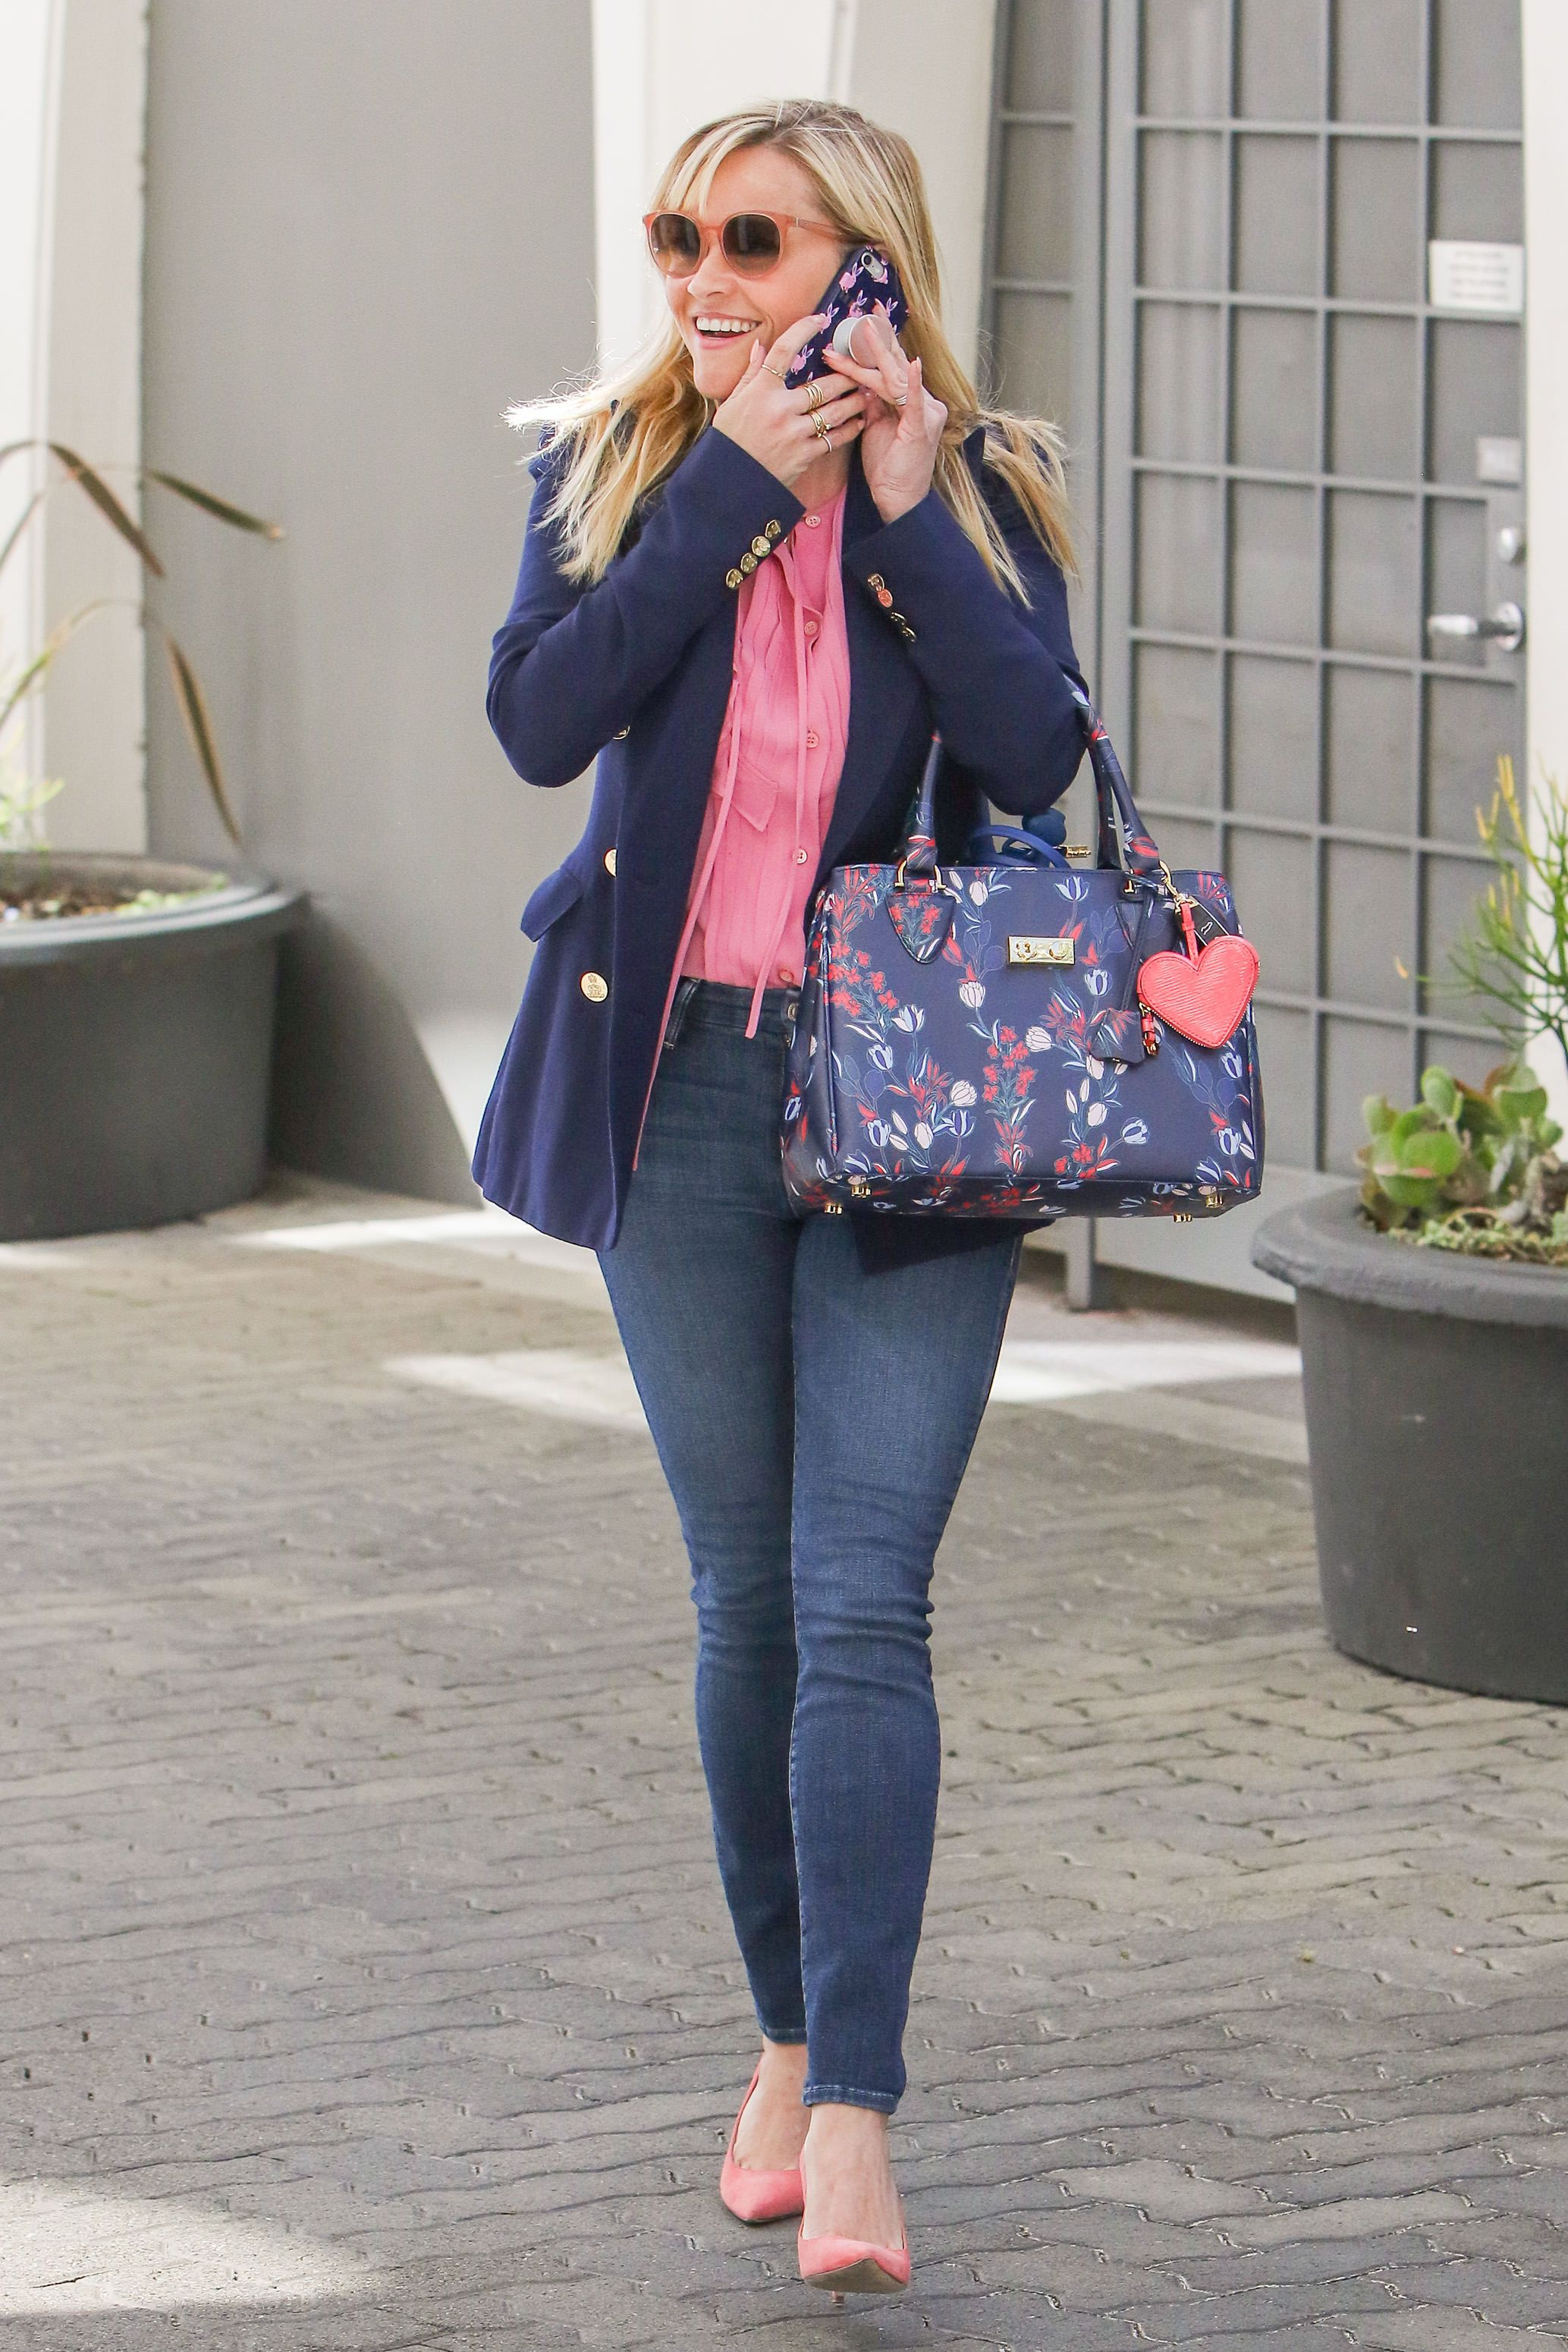 Reese witherspoon style how to dress like reese witherspoon buycottarizona